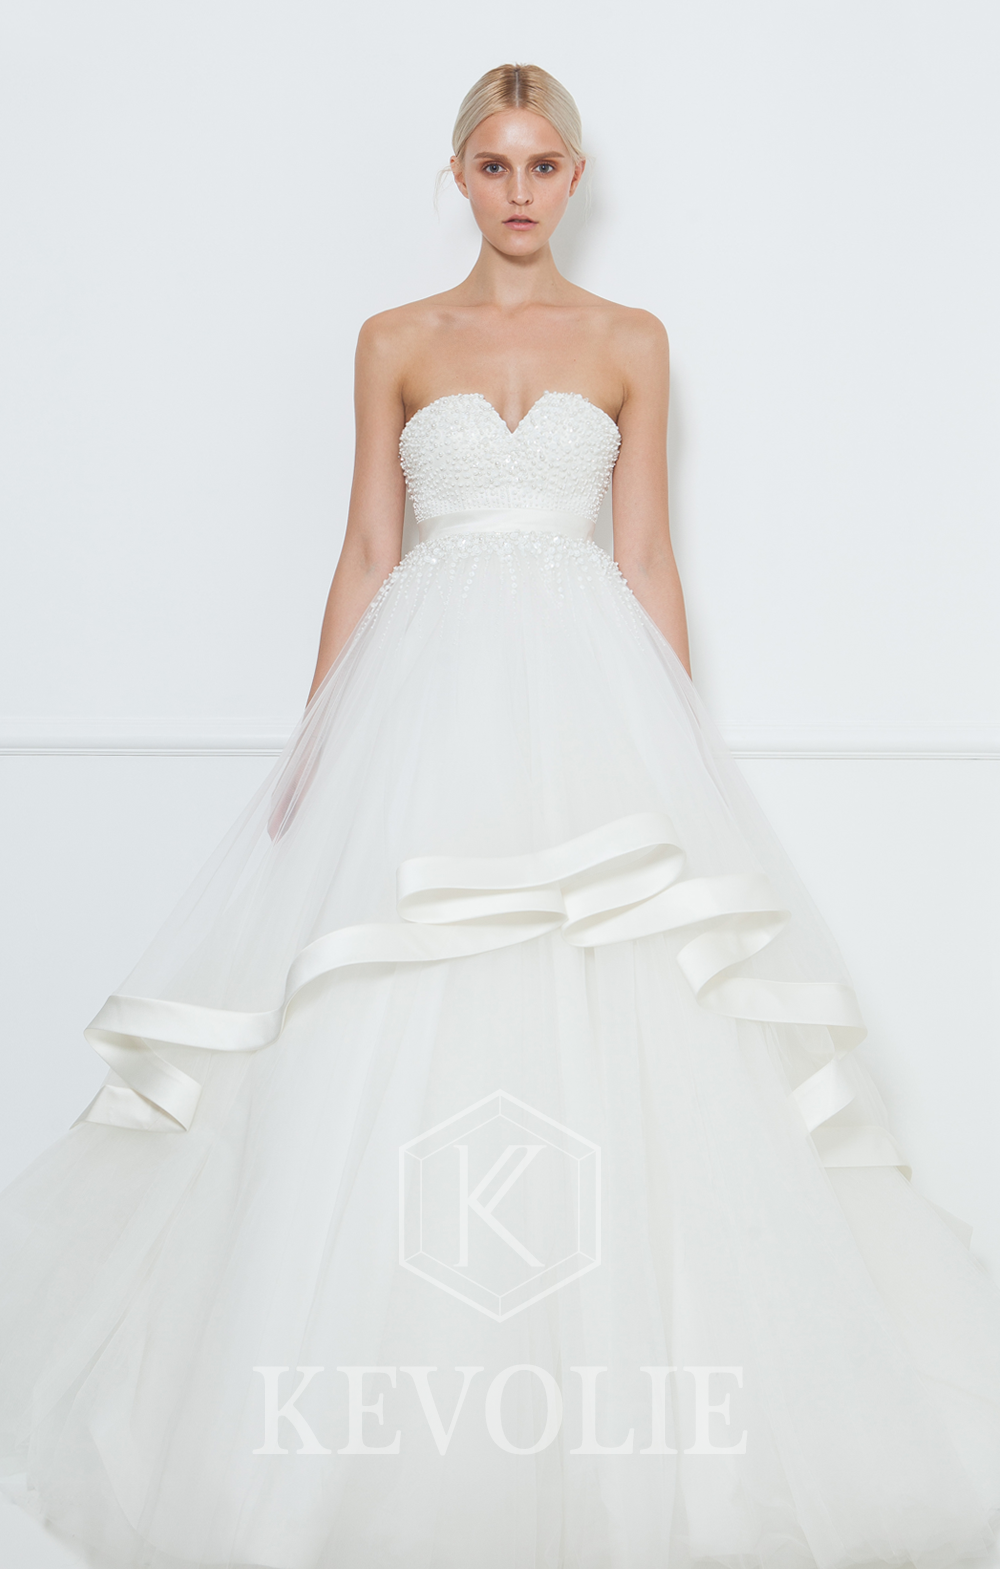 BRIDAL COLLECTION 2015-LOOK 12